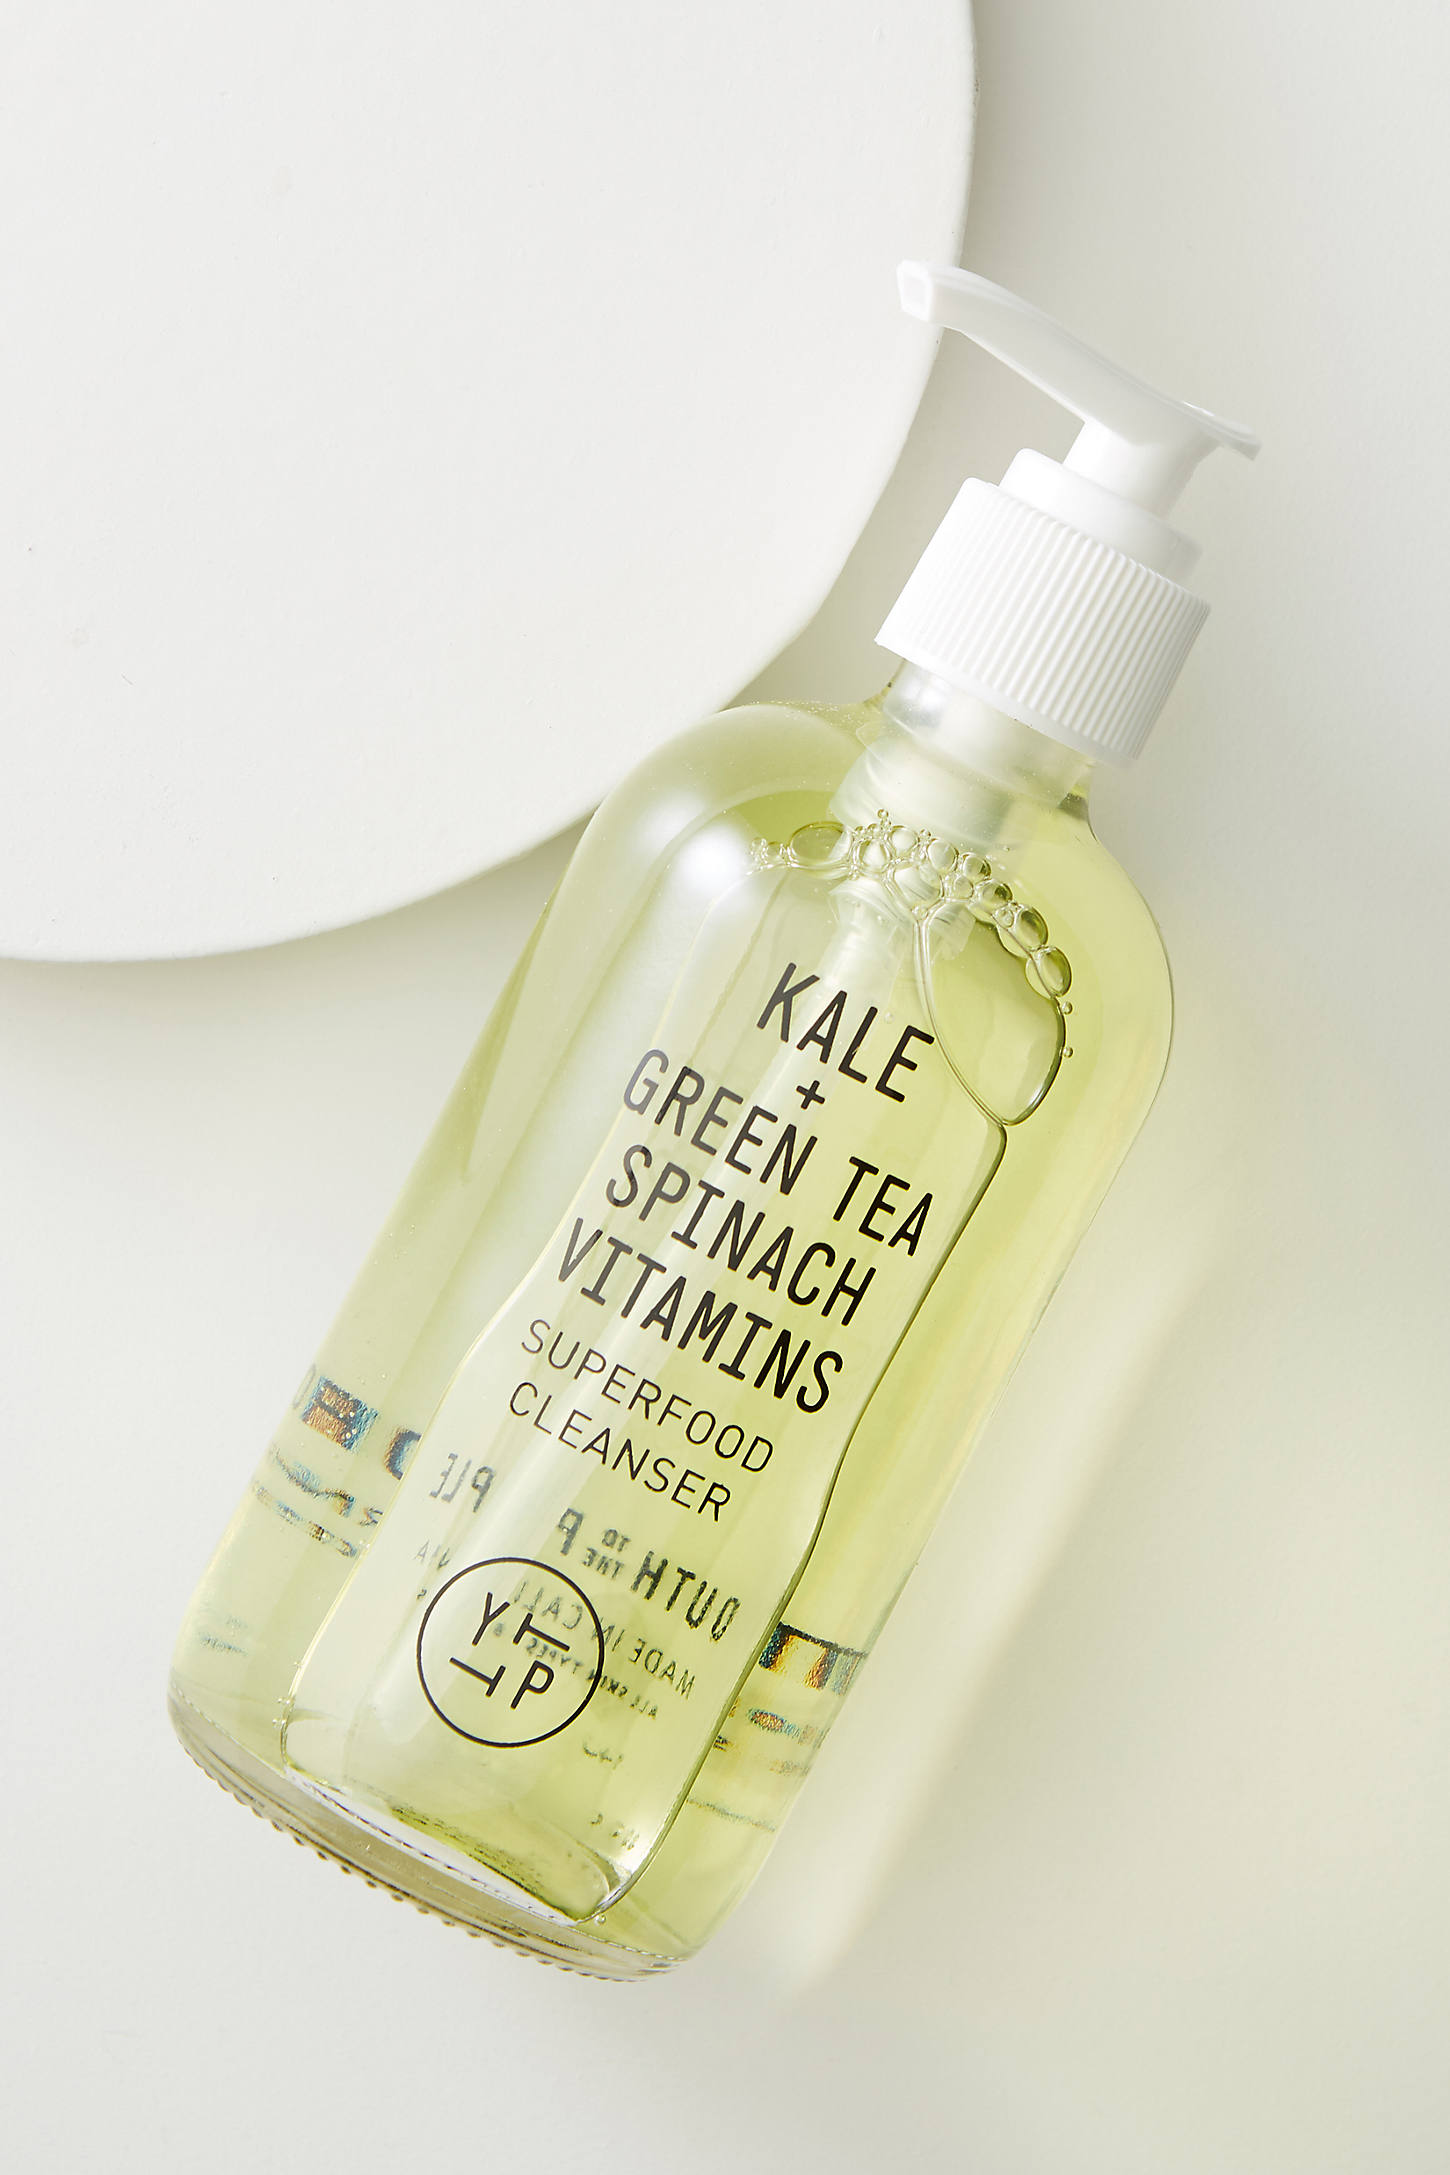 Youth To The People Cleanser